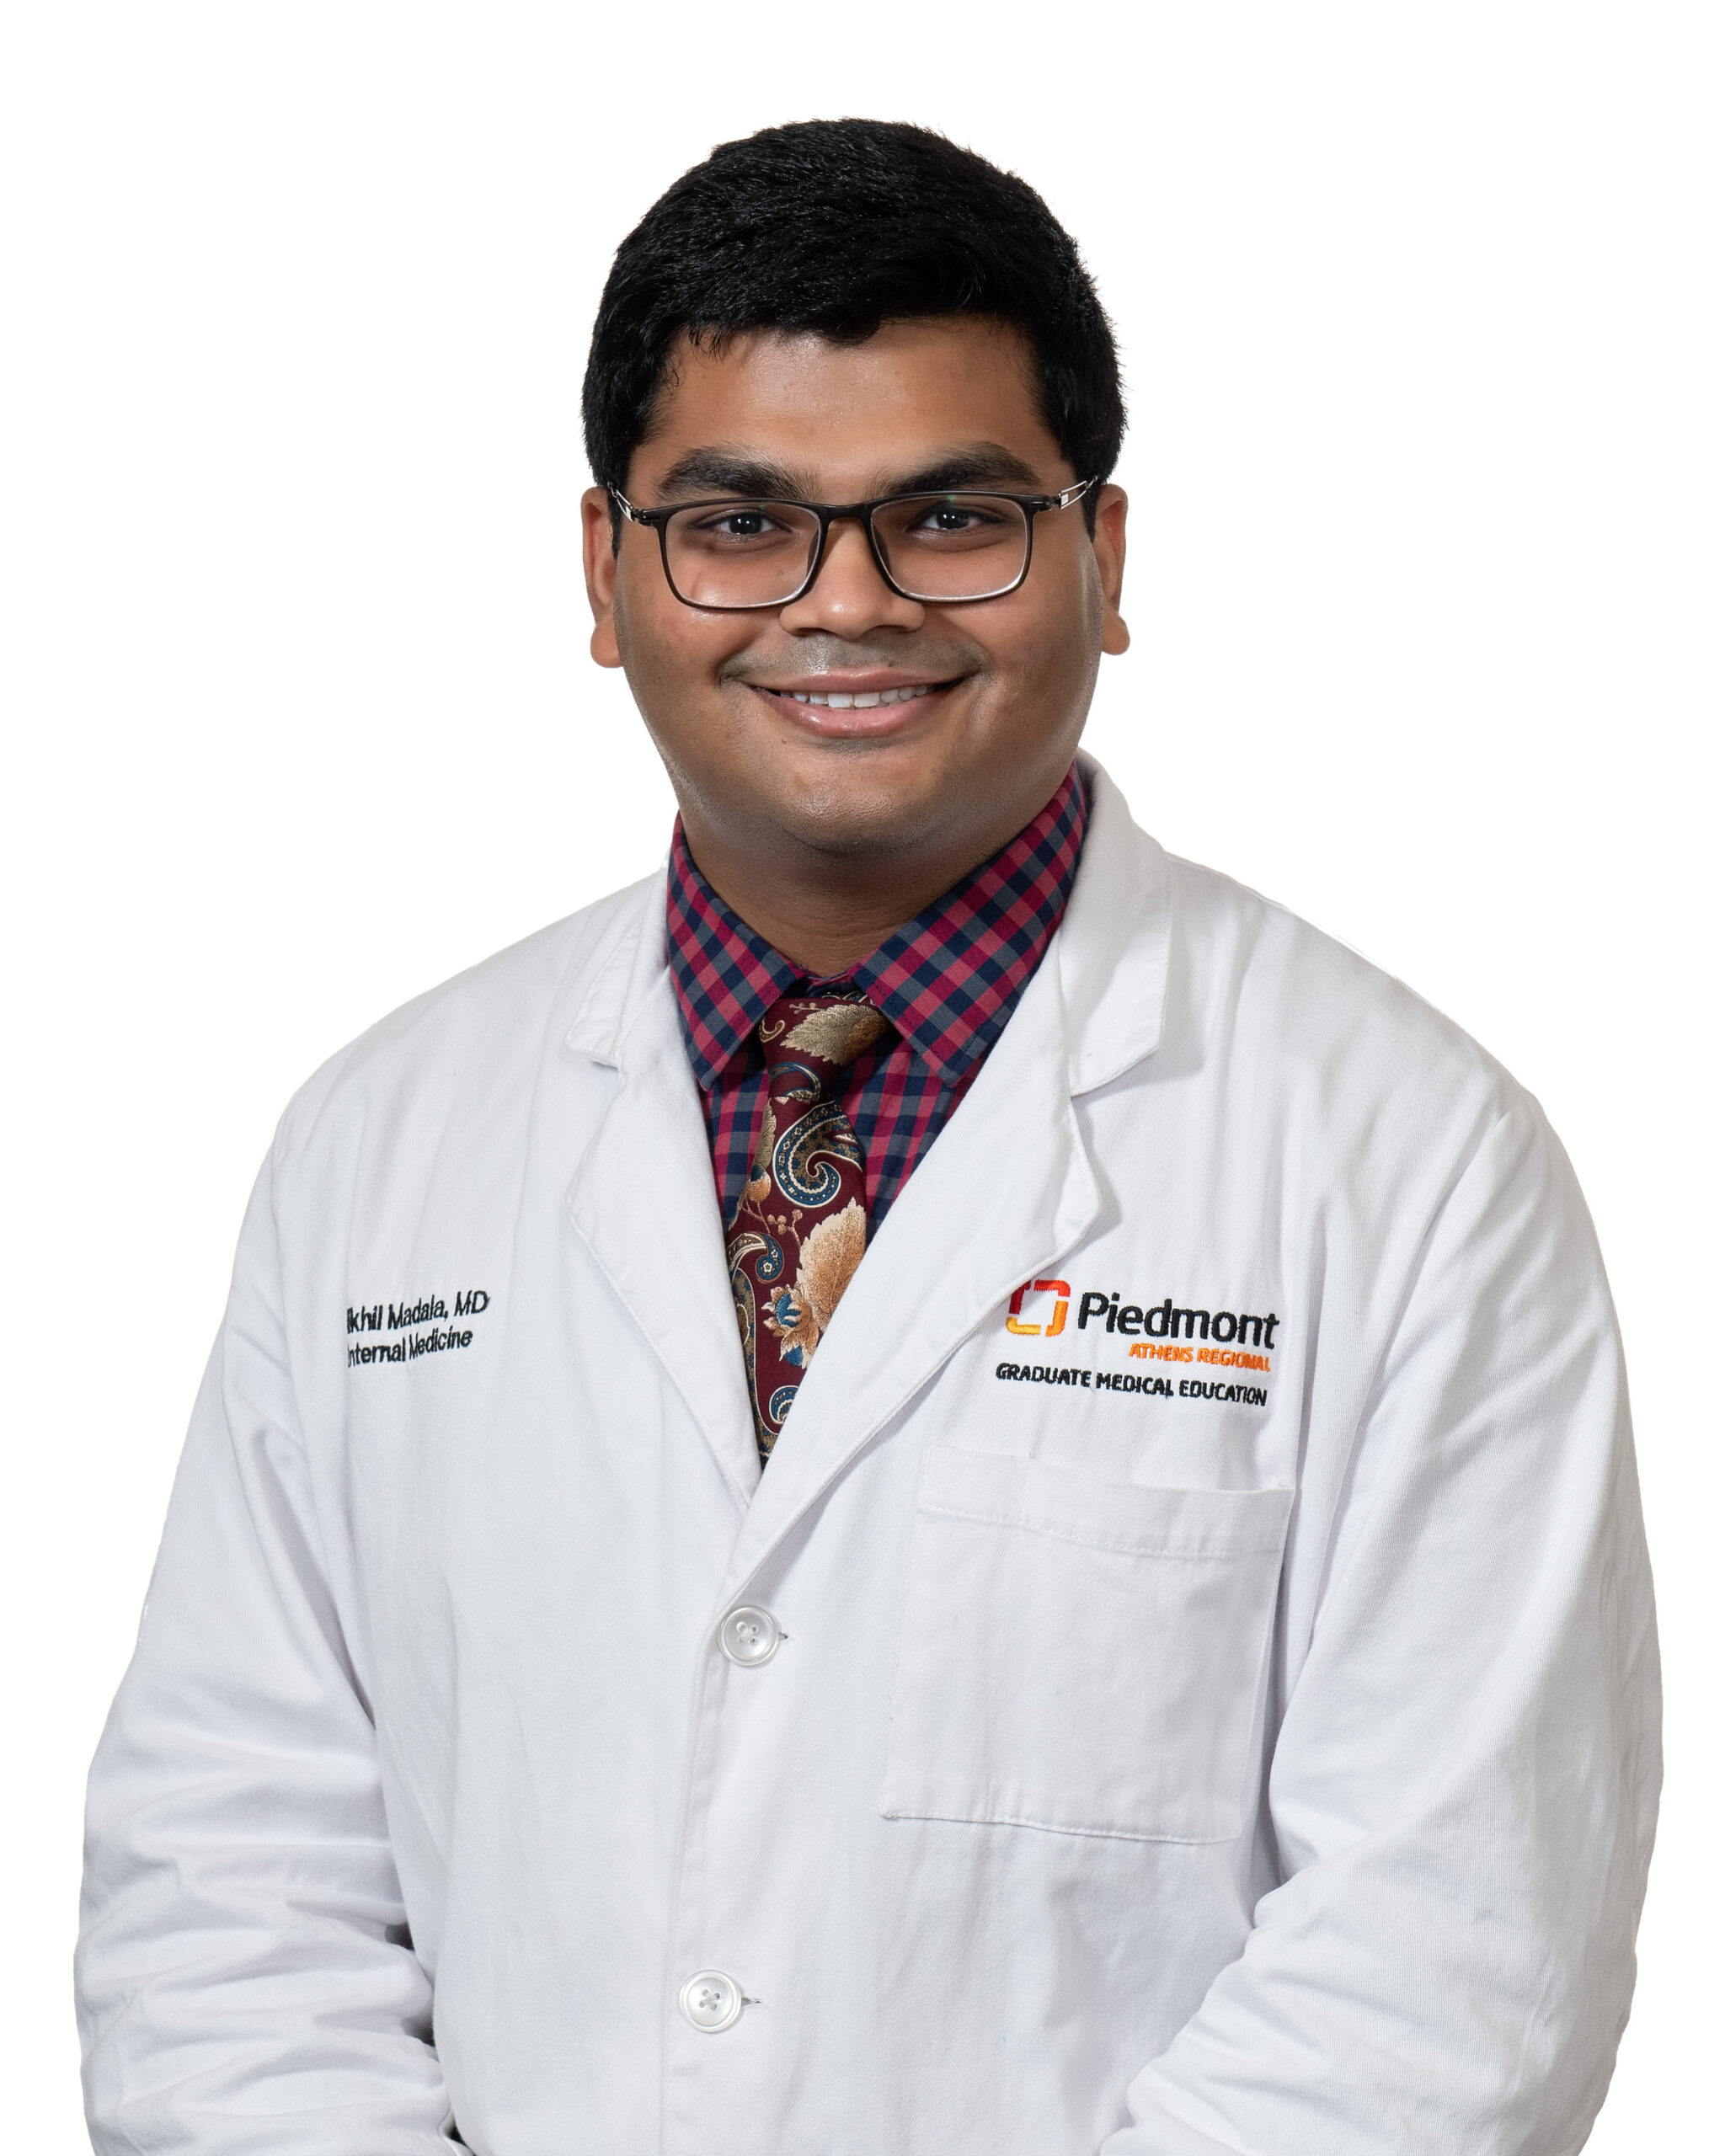 Nikhil Madala, MD